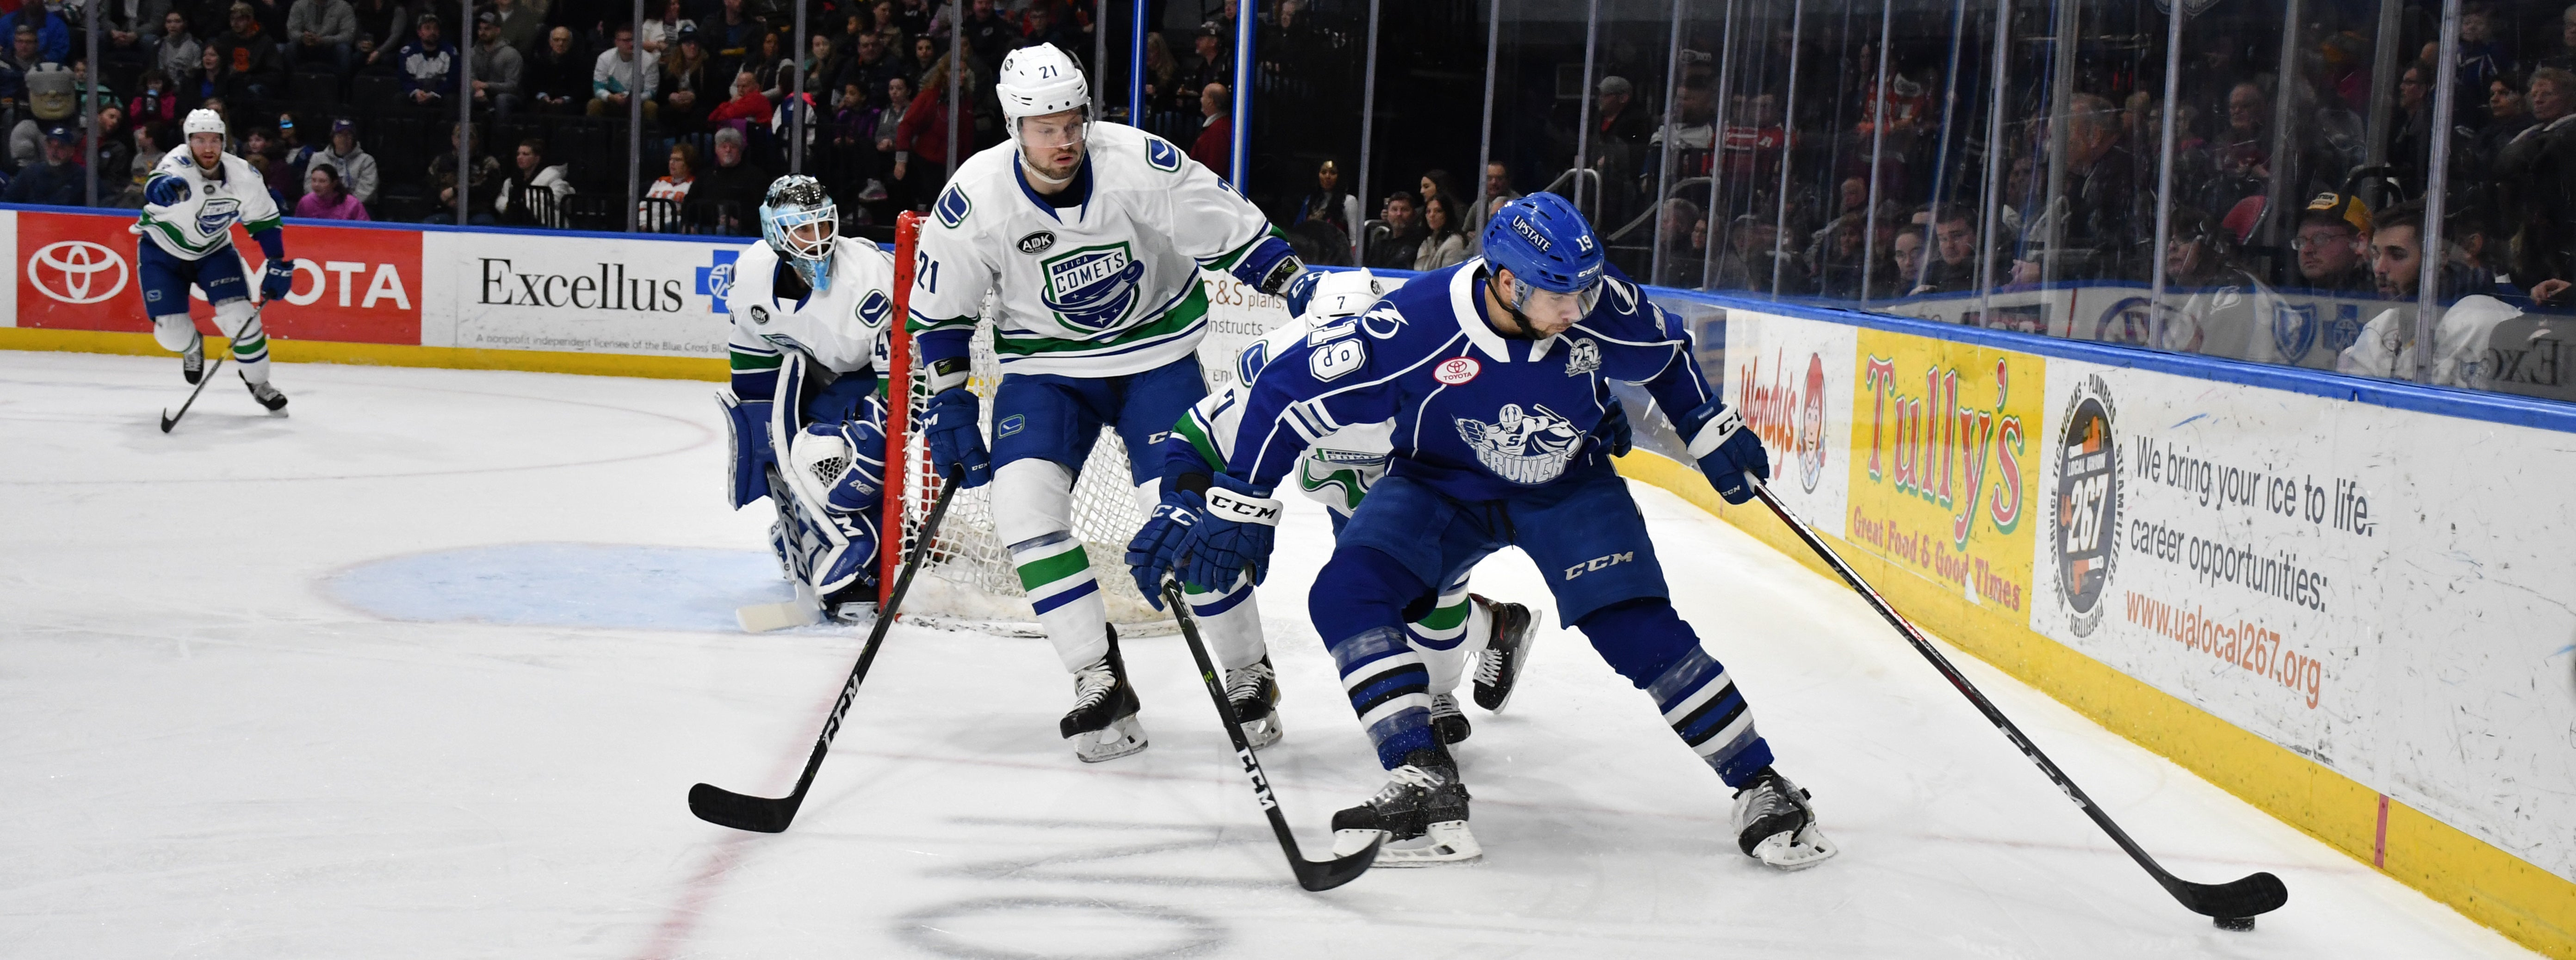 COMETS STUMBLE IN LOSS TO SYRACUSE